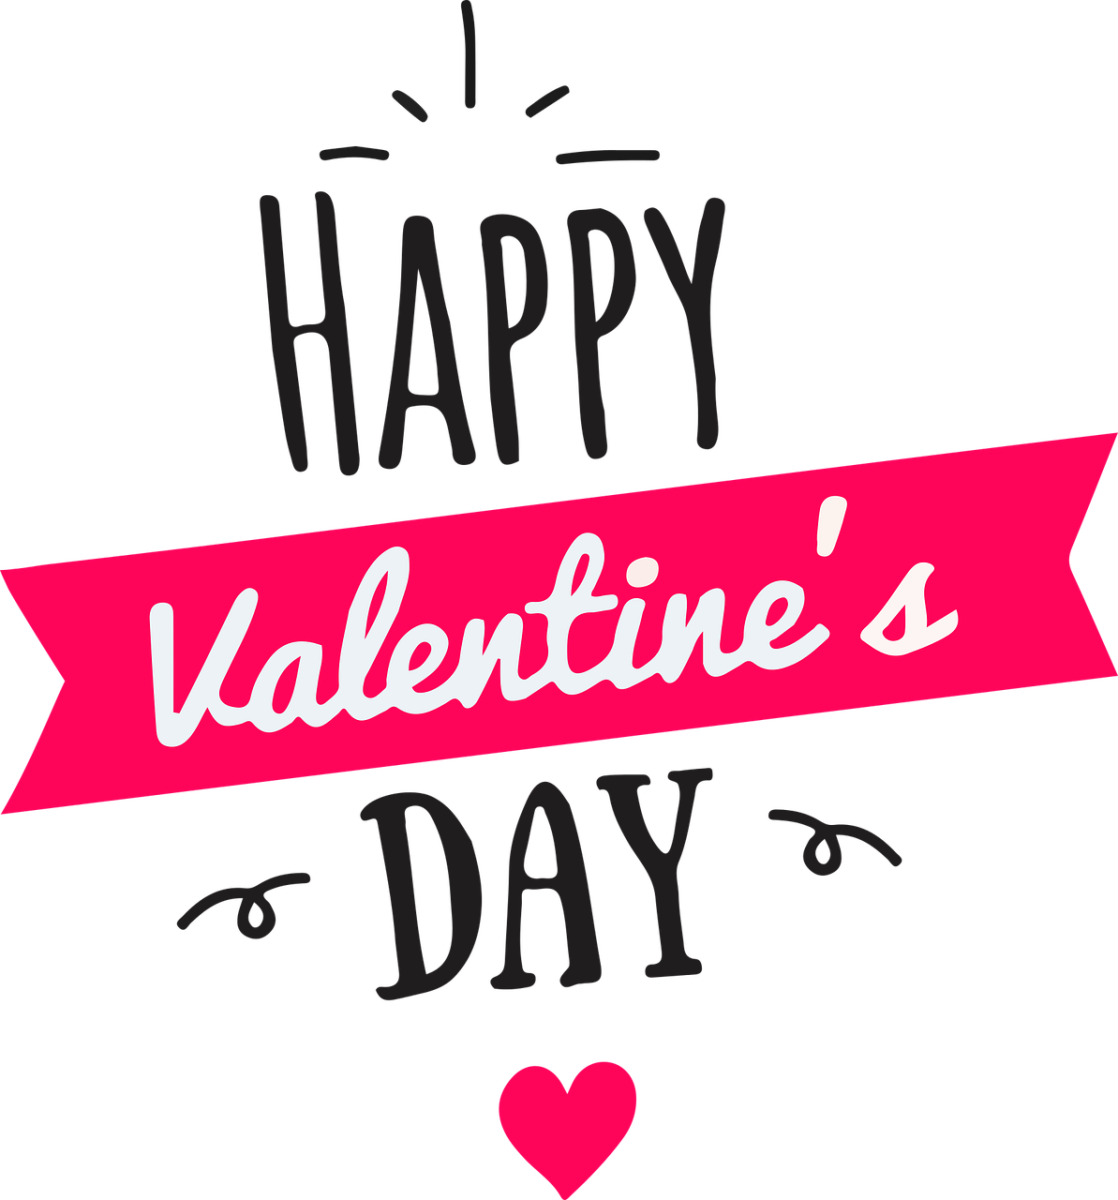 whats-the-deal-with-stvalentinesday